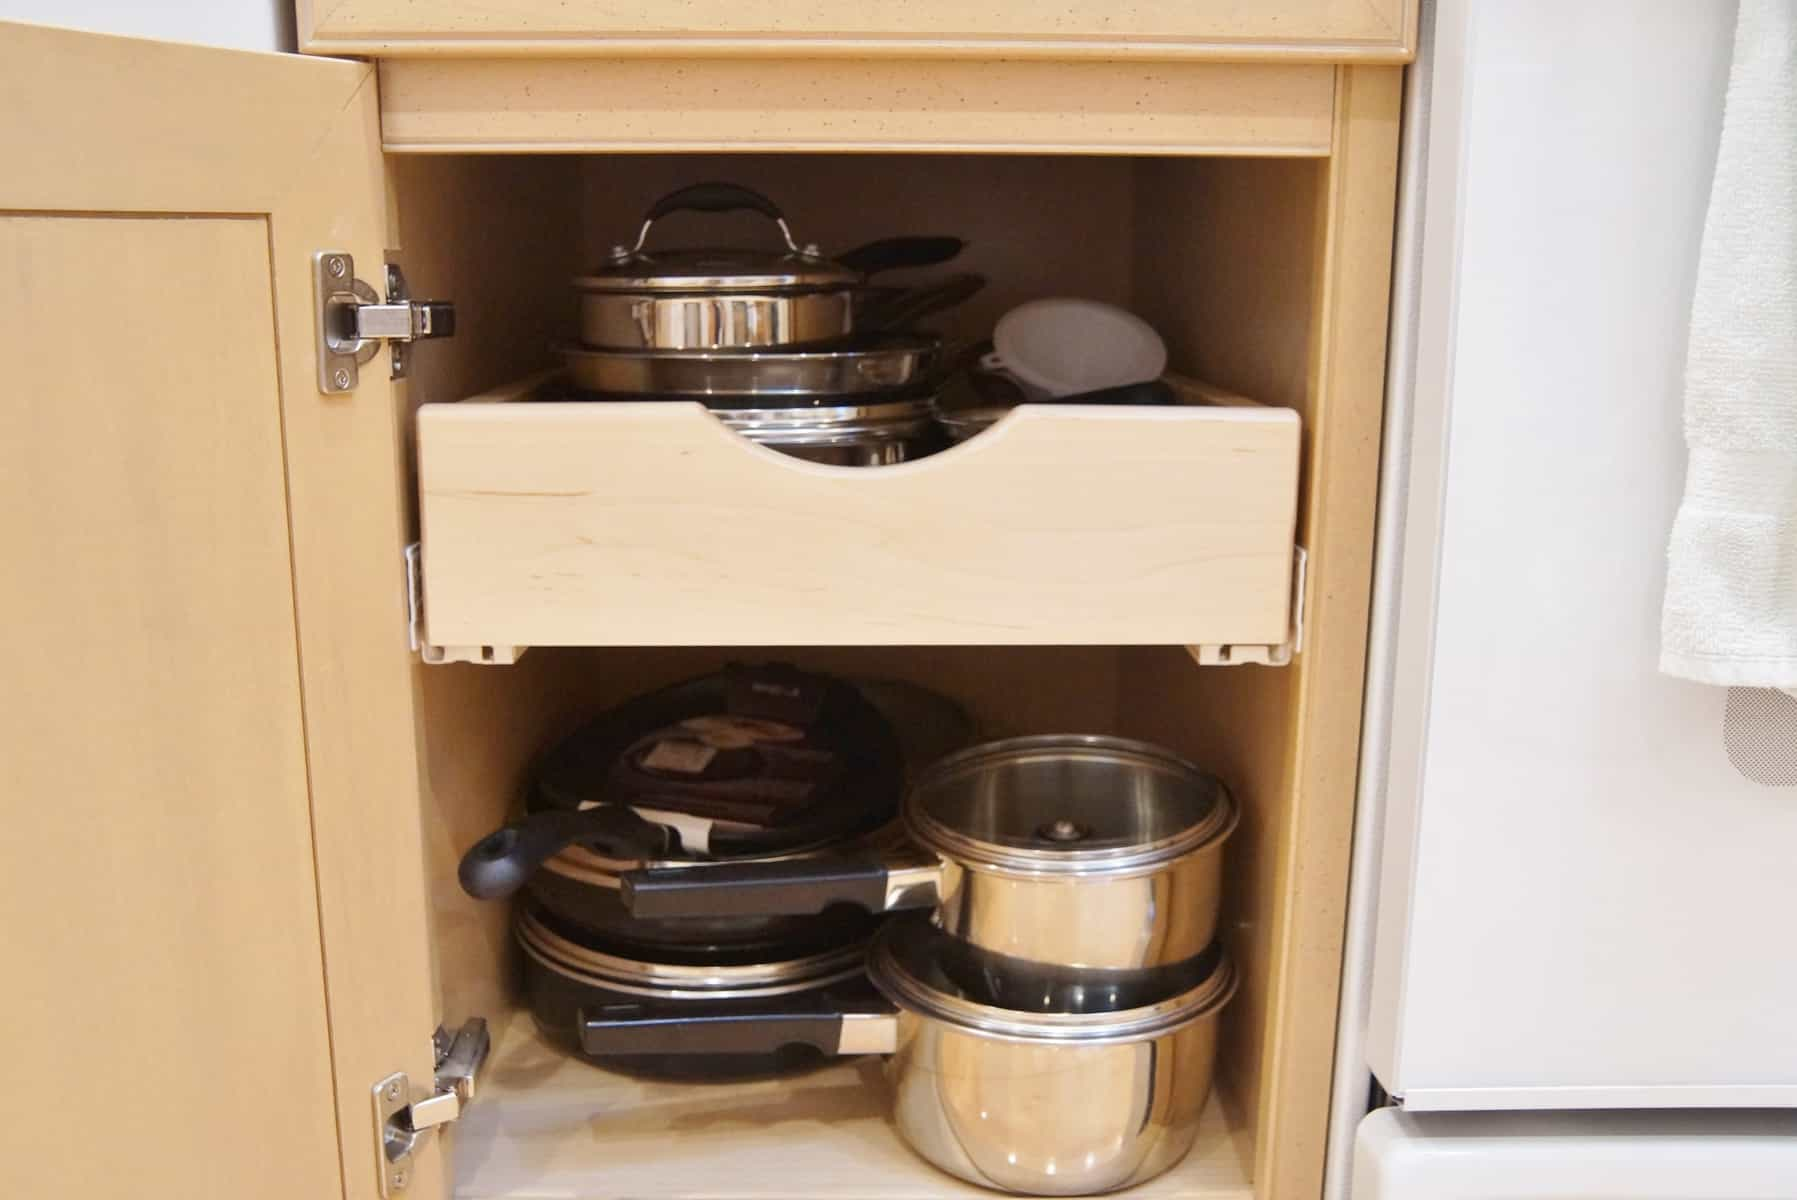 installing rolling shelves in kitchen cabinets 2 installing rolling shelves in kitchen cabinets diy